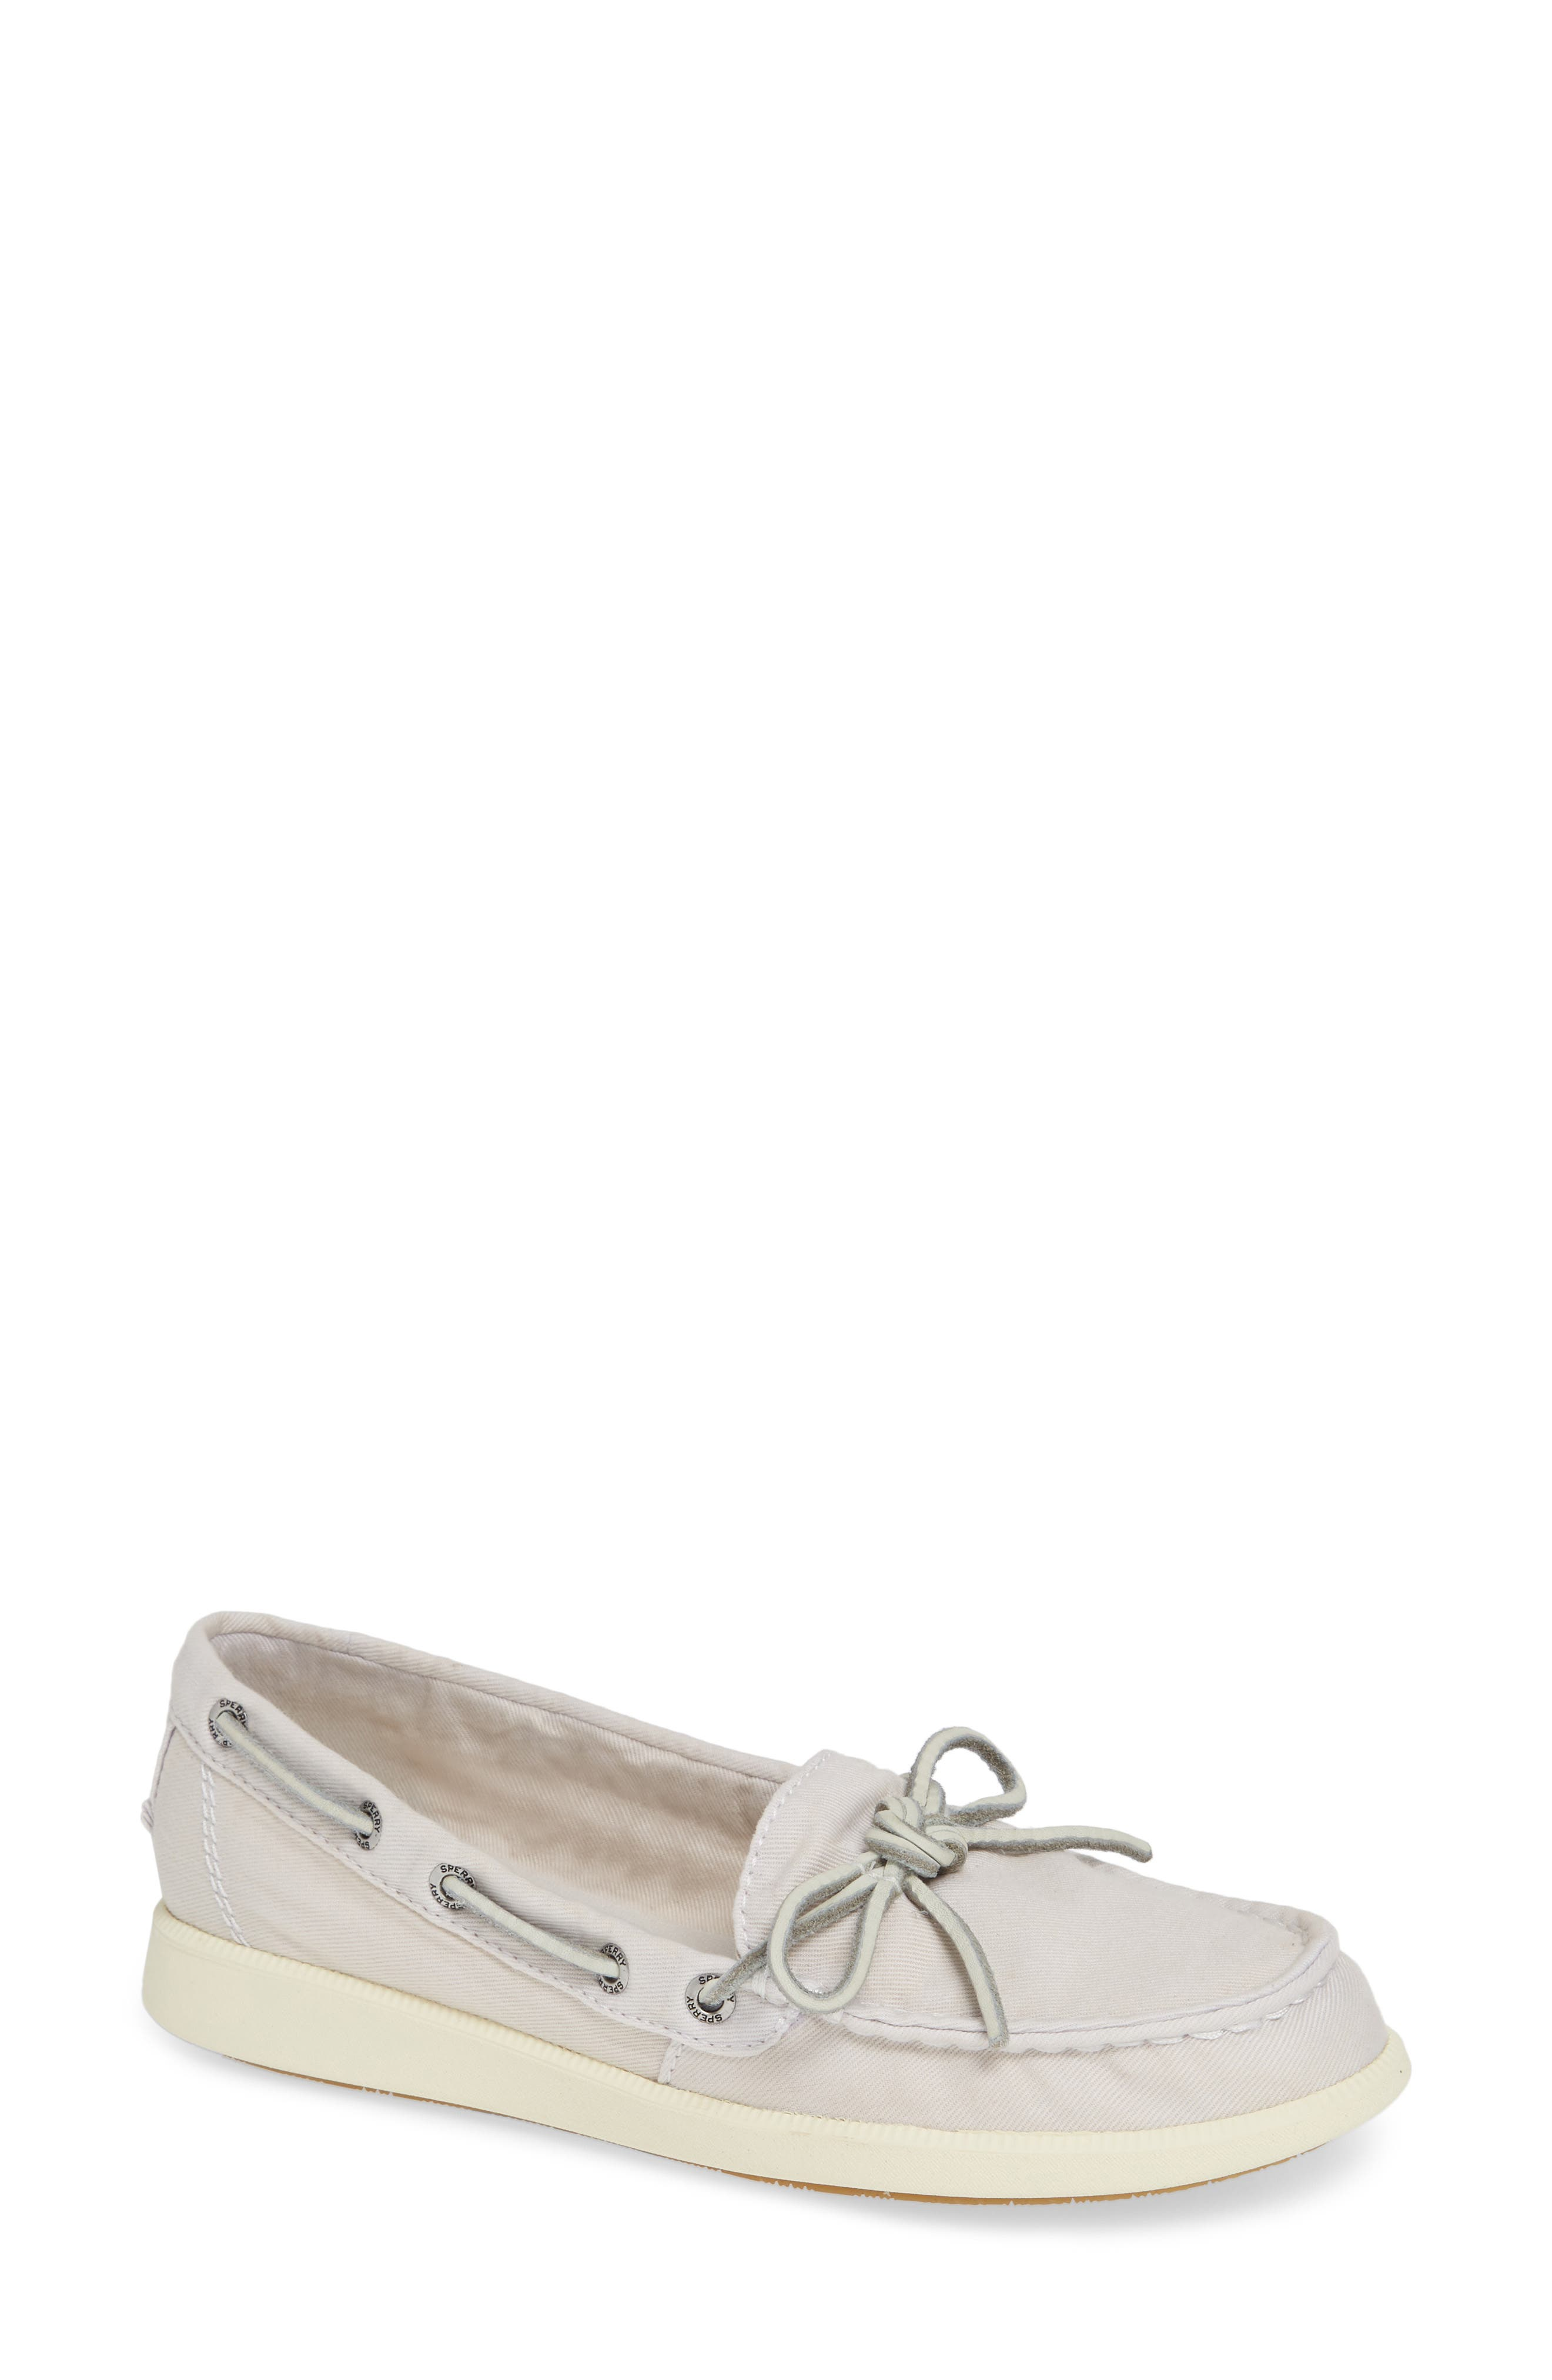 Oasis Boat Shoe,                         Main,                         color, Ivory Canvas